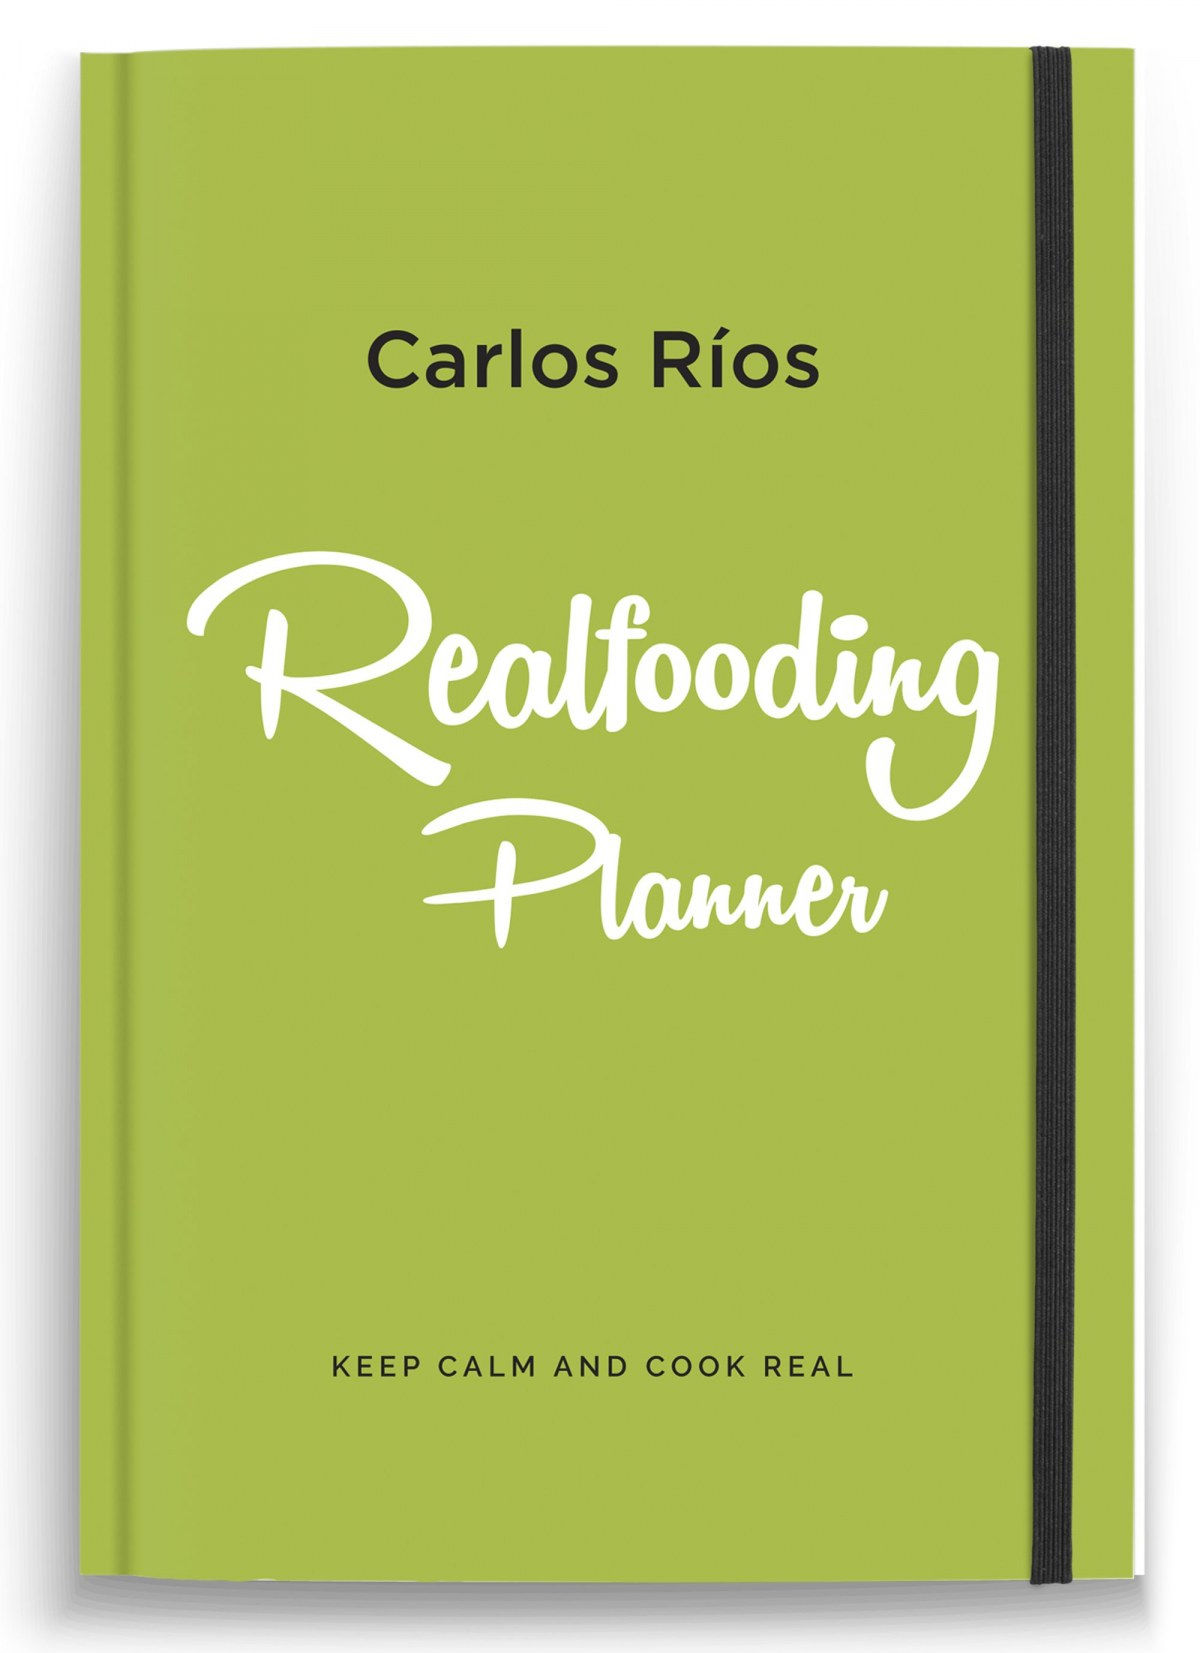 Planner Realfooding 9788417166762